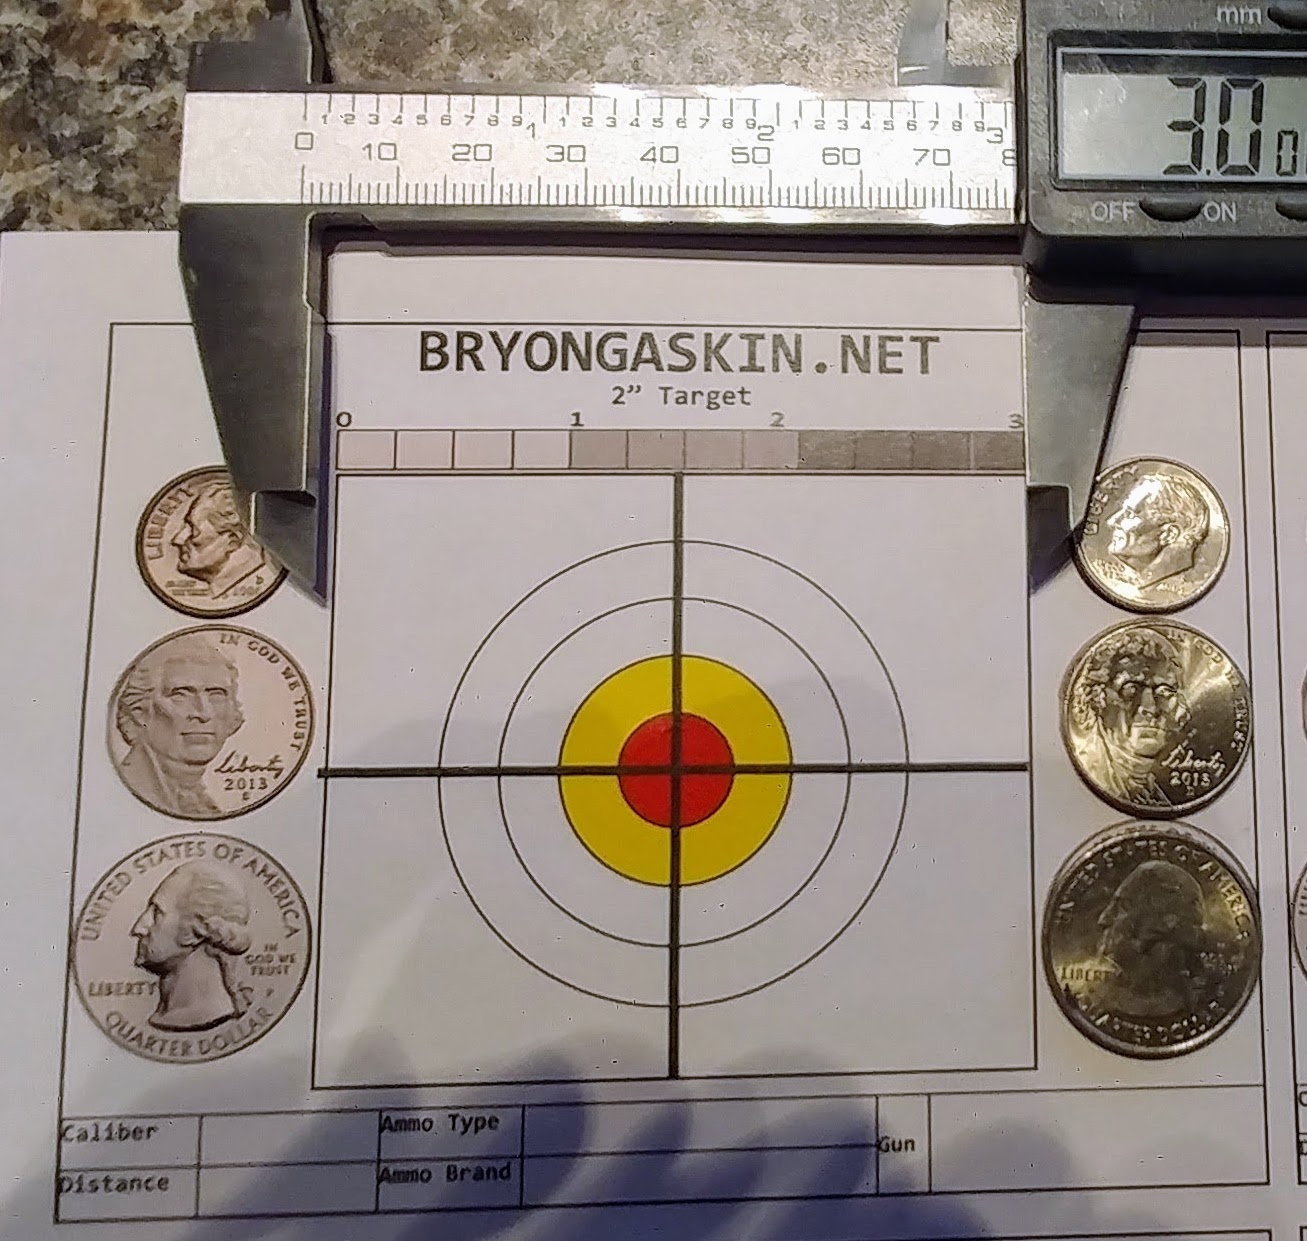 4×4 2″ Printable Target With Us Coin Scale – Bryon Gaskin